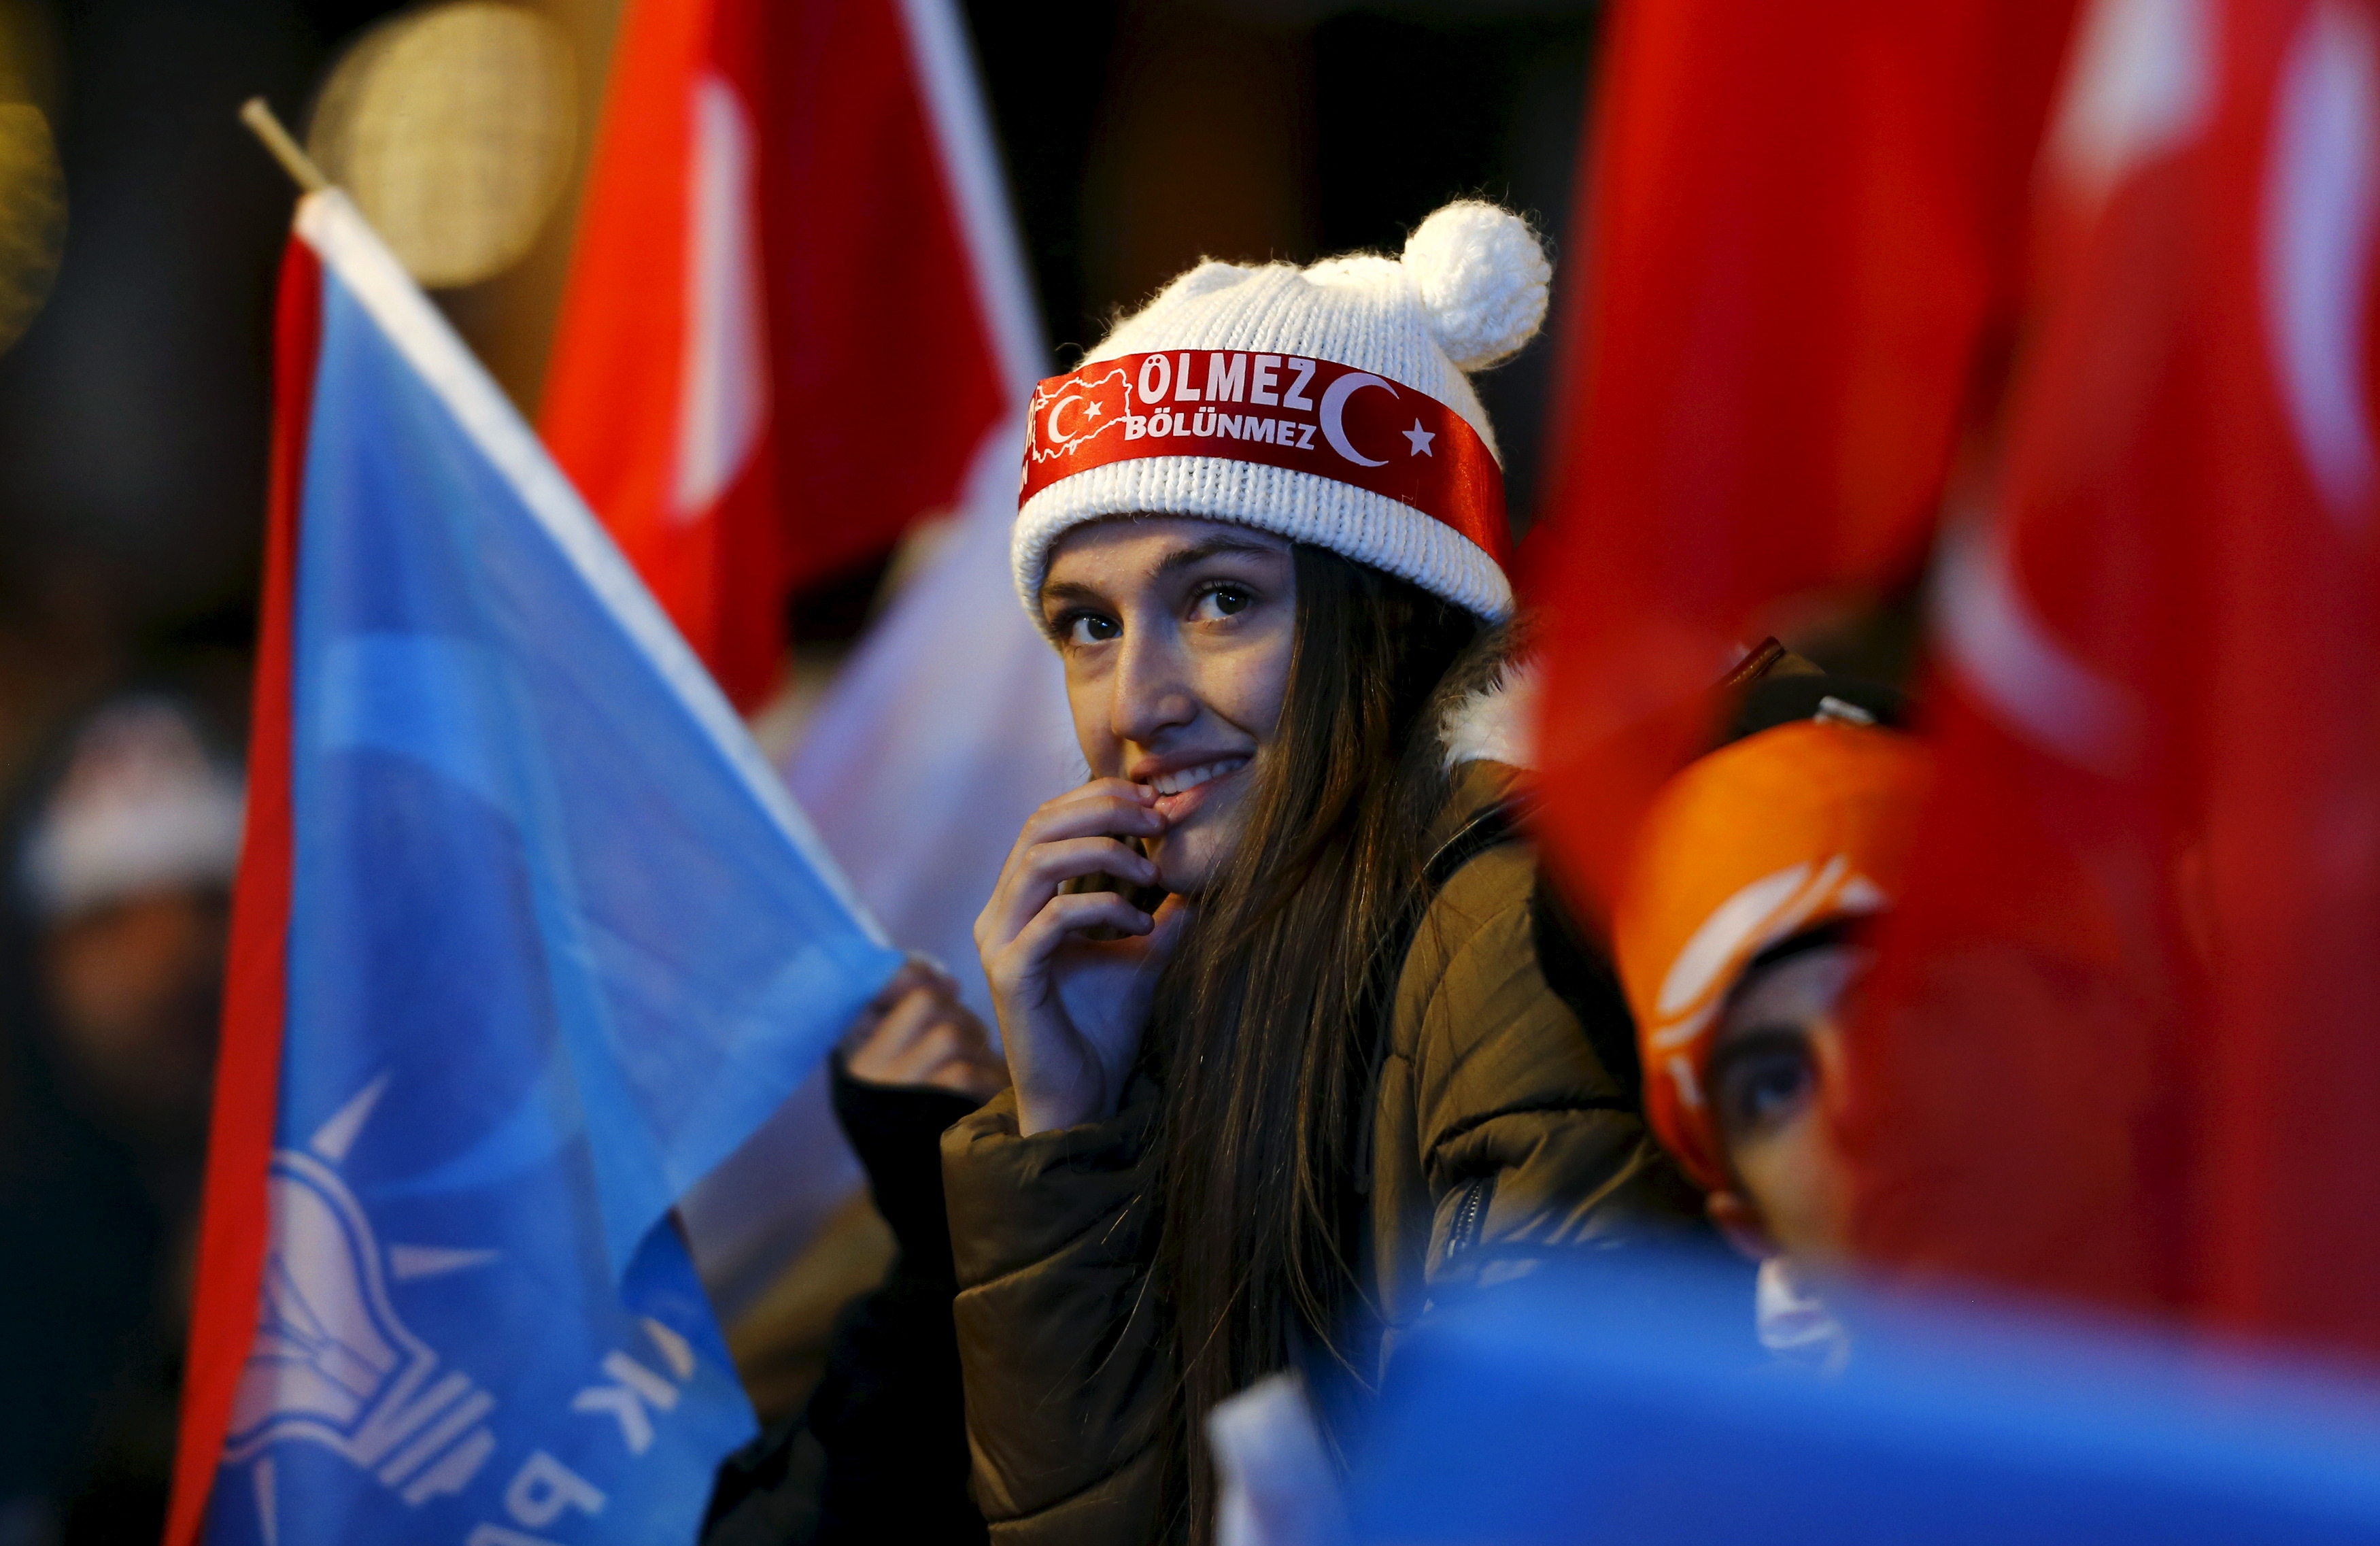 An AK Party supporter waits for the start of Turkey's Prime Minister Ahmet Davutoglu's speech in front of the party headquarters in Ankara, Turkey November 2, 2015.